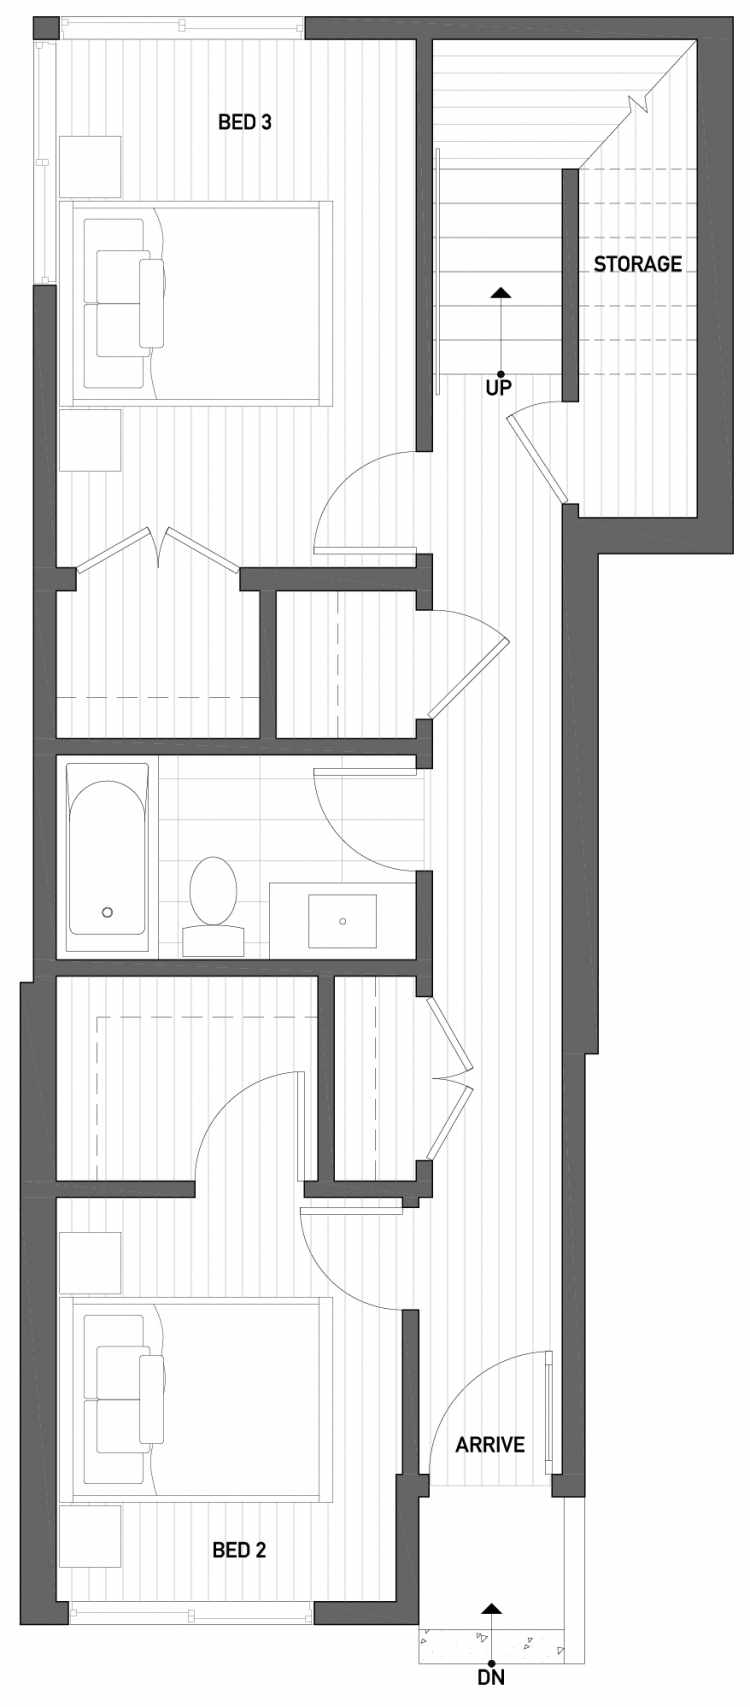 First Floor Plan of 2504 Everett Ave E of the Baymont Townhomes